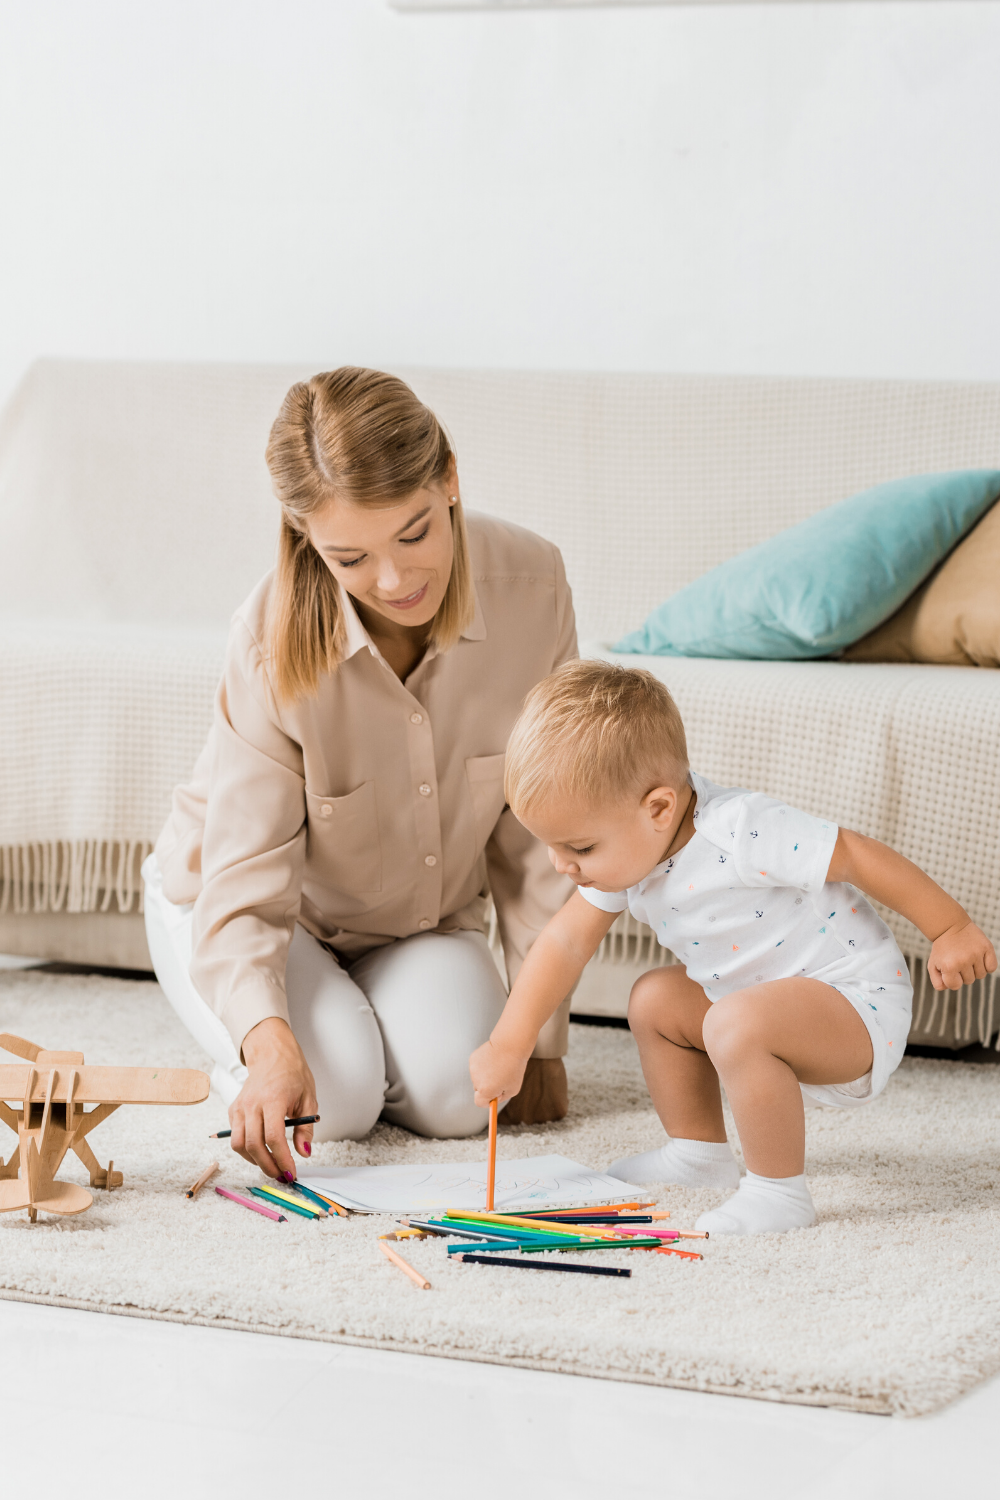 21 Simple Lessons & Activities To Teach Your 1-Year-Old​